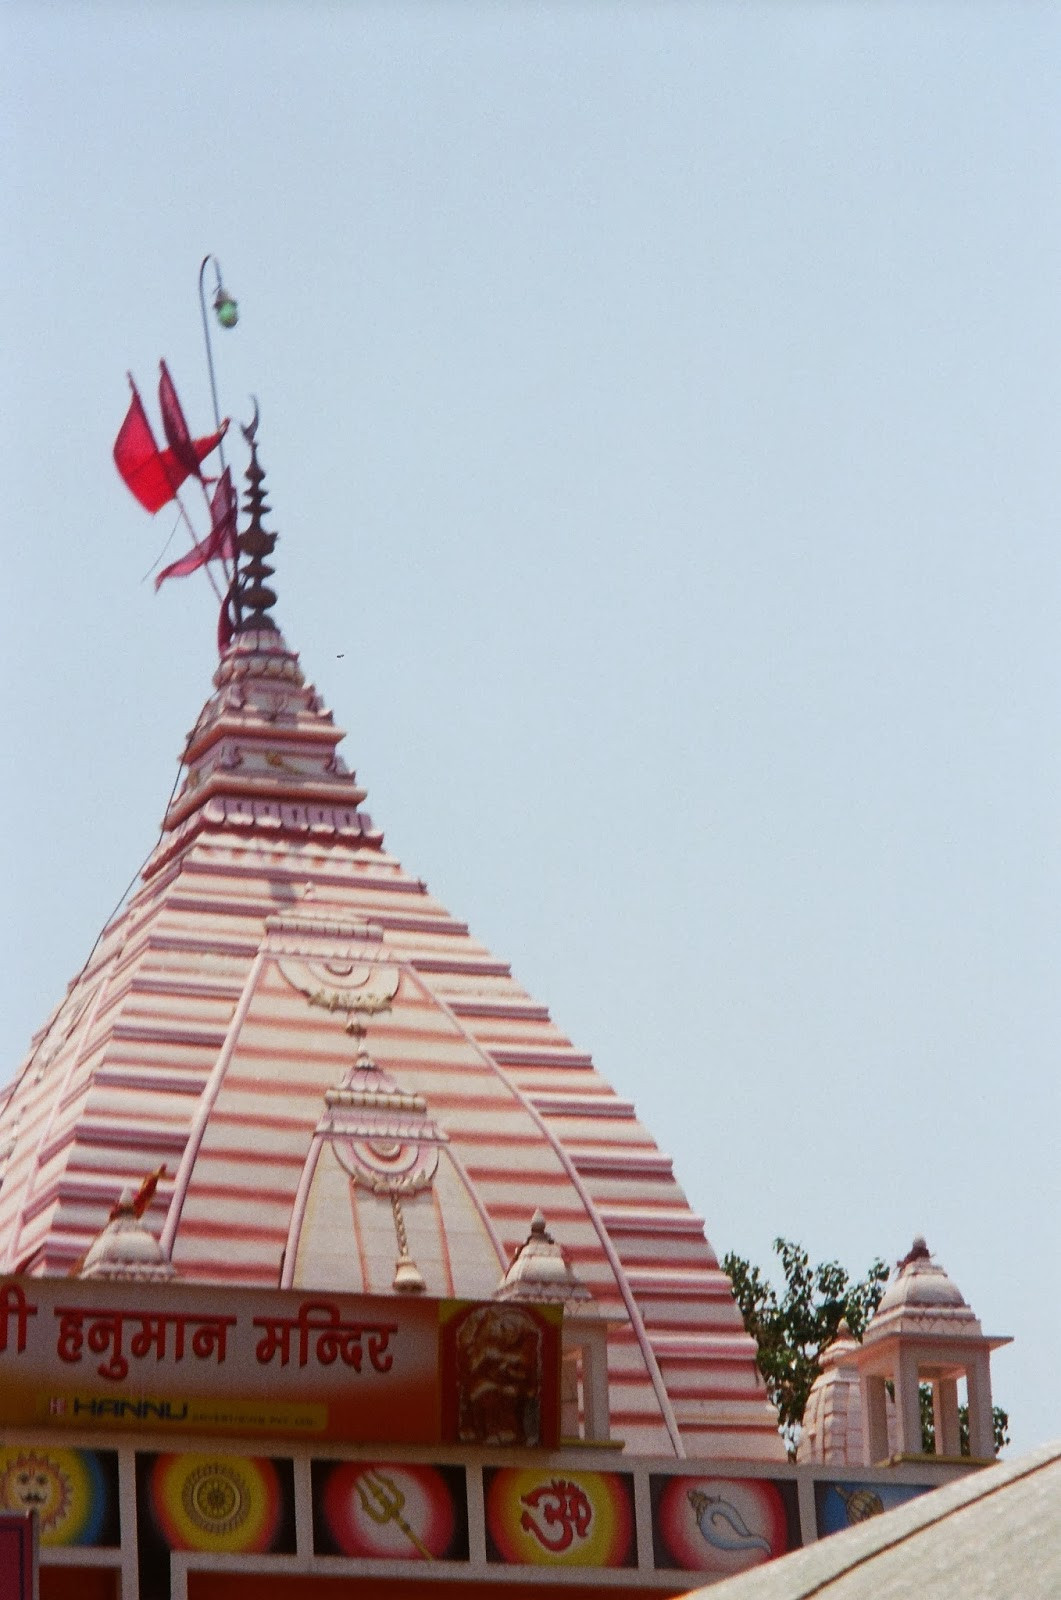 The spire of the temple having crescent moon on the top